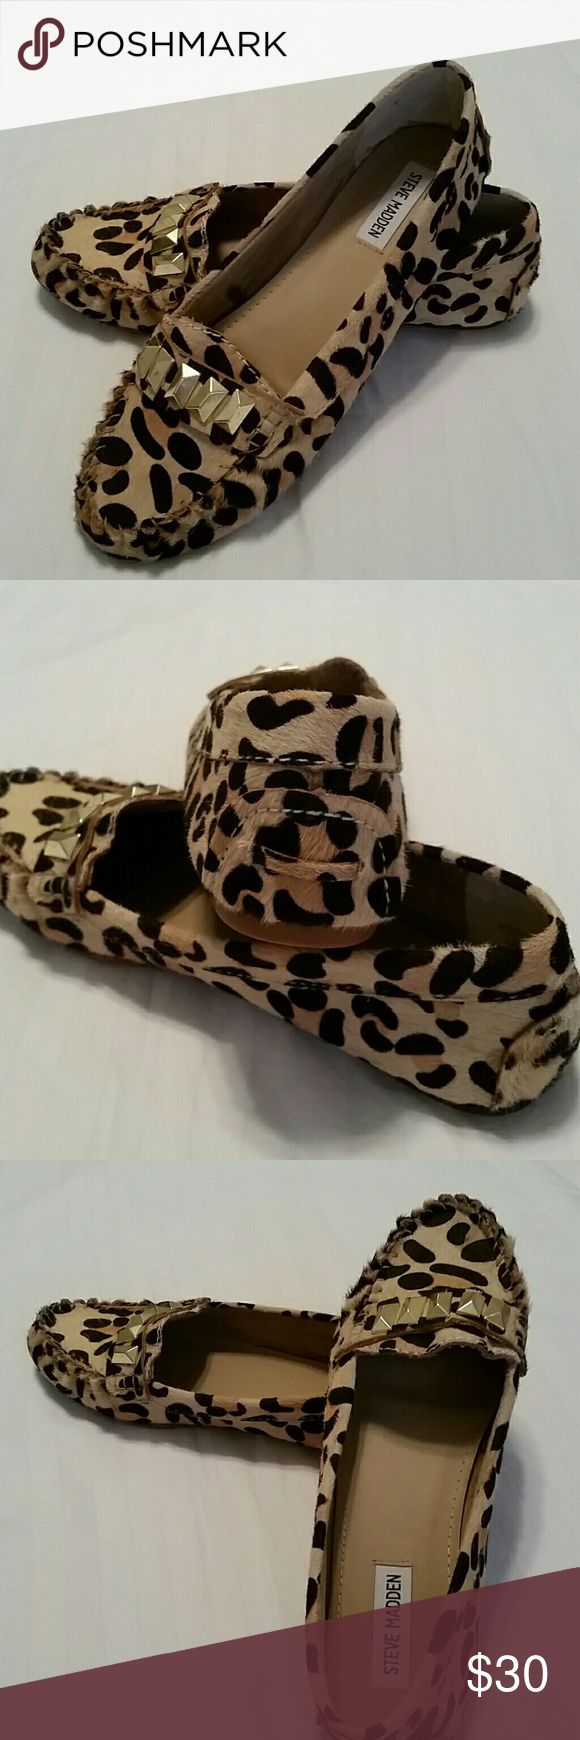 Steve Madden Shoes Steve Madden fur cheetah print studded loafers size 9 Steve Madden Shoes Flats & Loafers